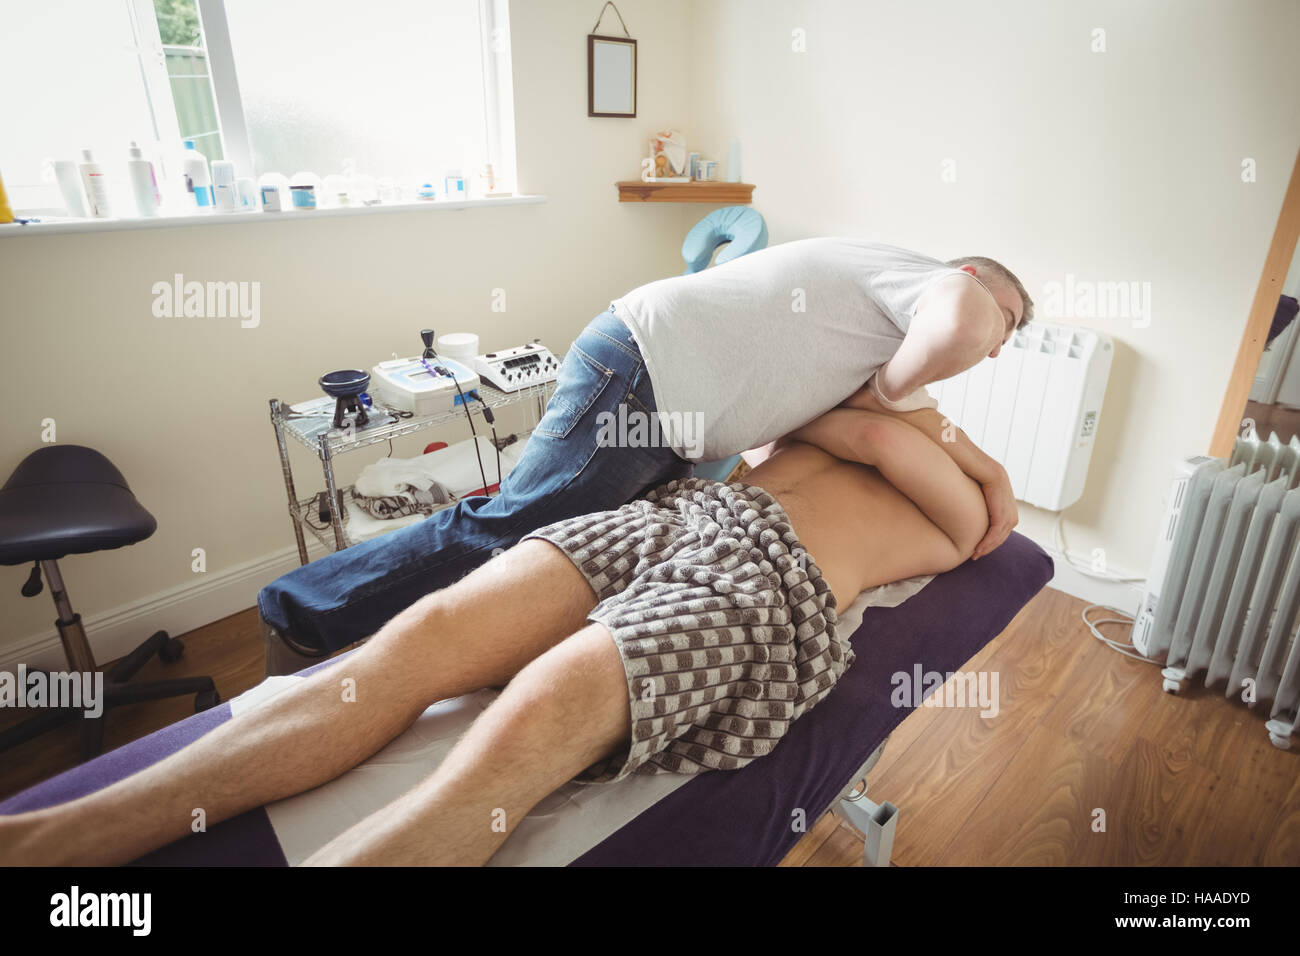 Physiotherapist examining shoulder of a patient - Stock Image